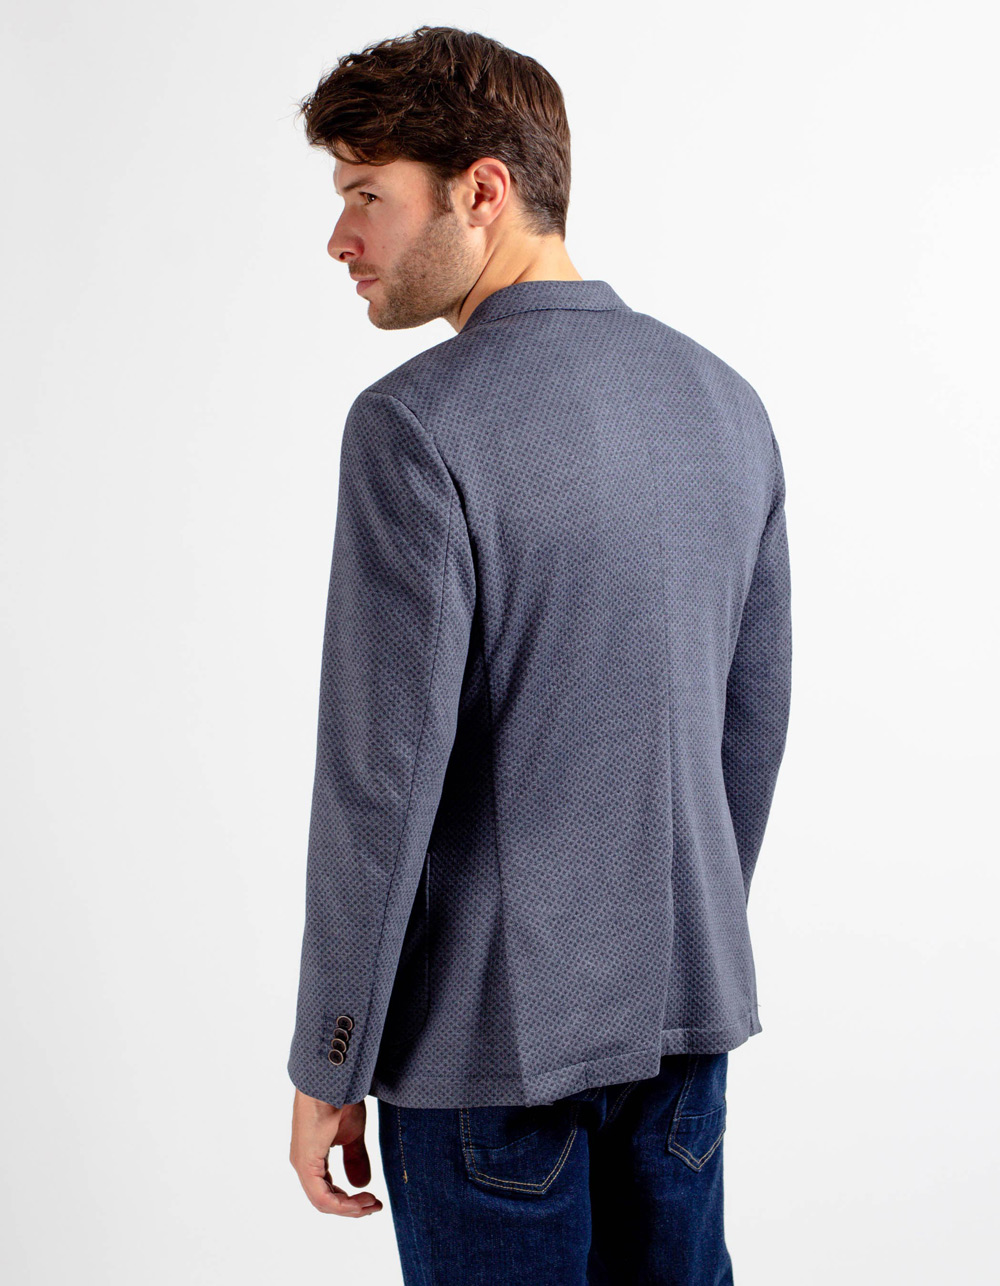 Grey pattern blazer - Backside